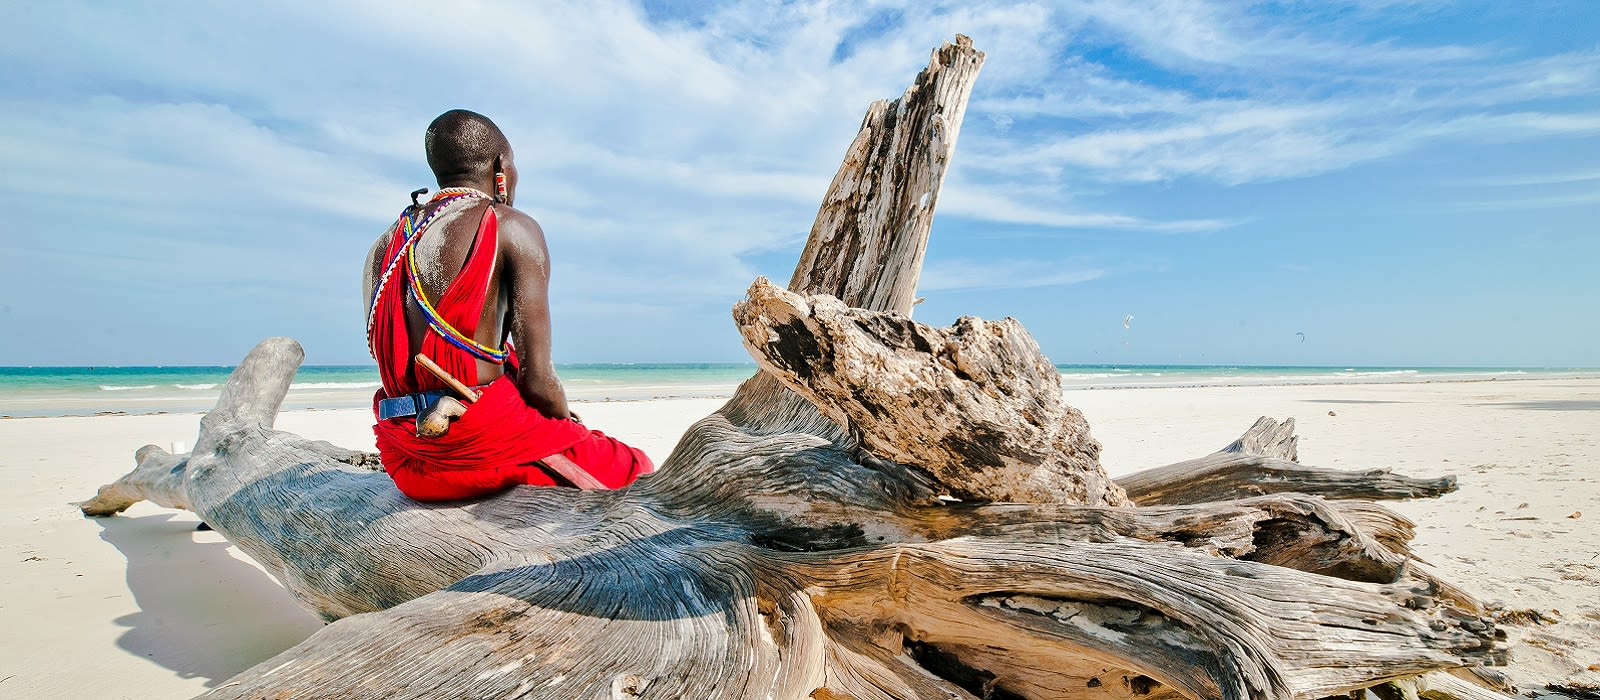 Enchanting Travels Tanzania Tours Man from the Maasai tribe sits on the shore of the Indian ocean - culture of Tanzania